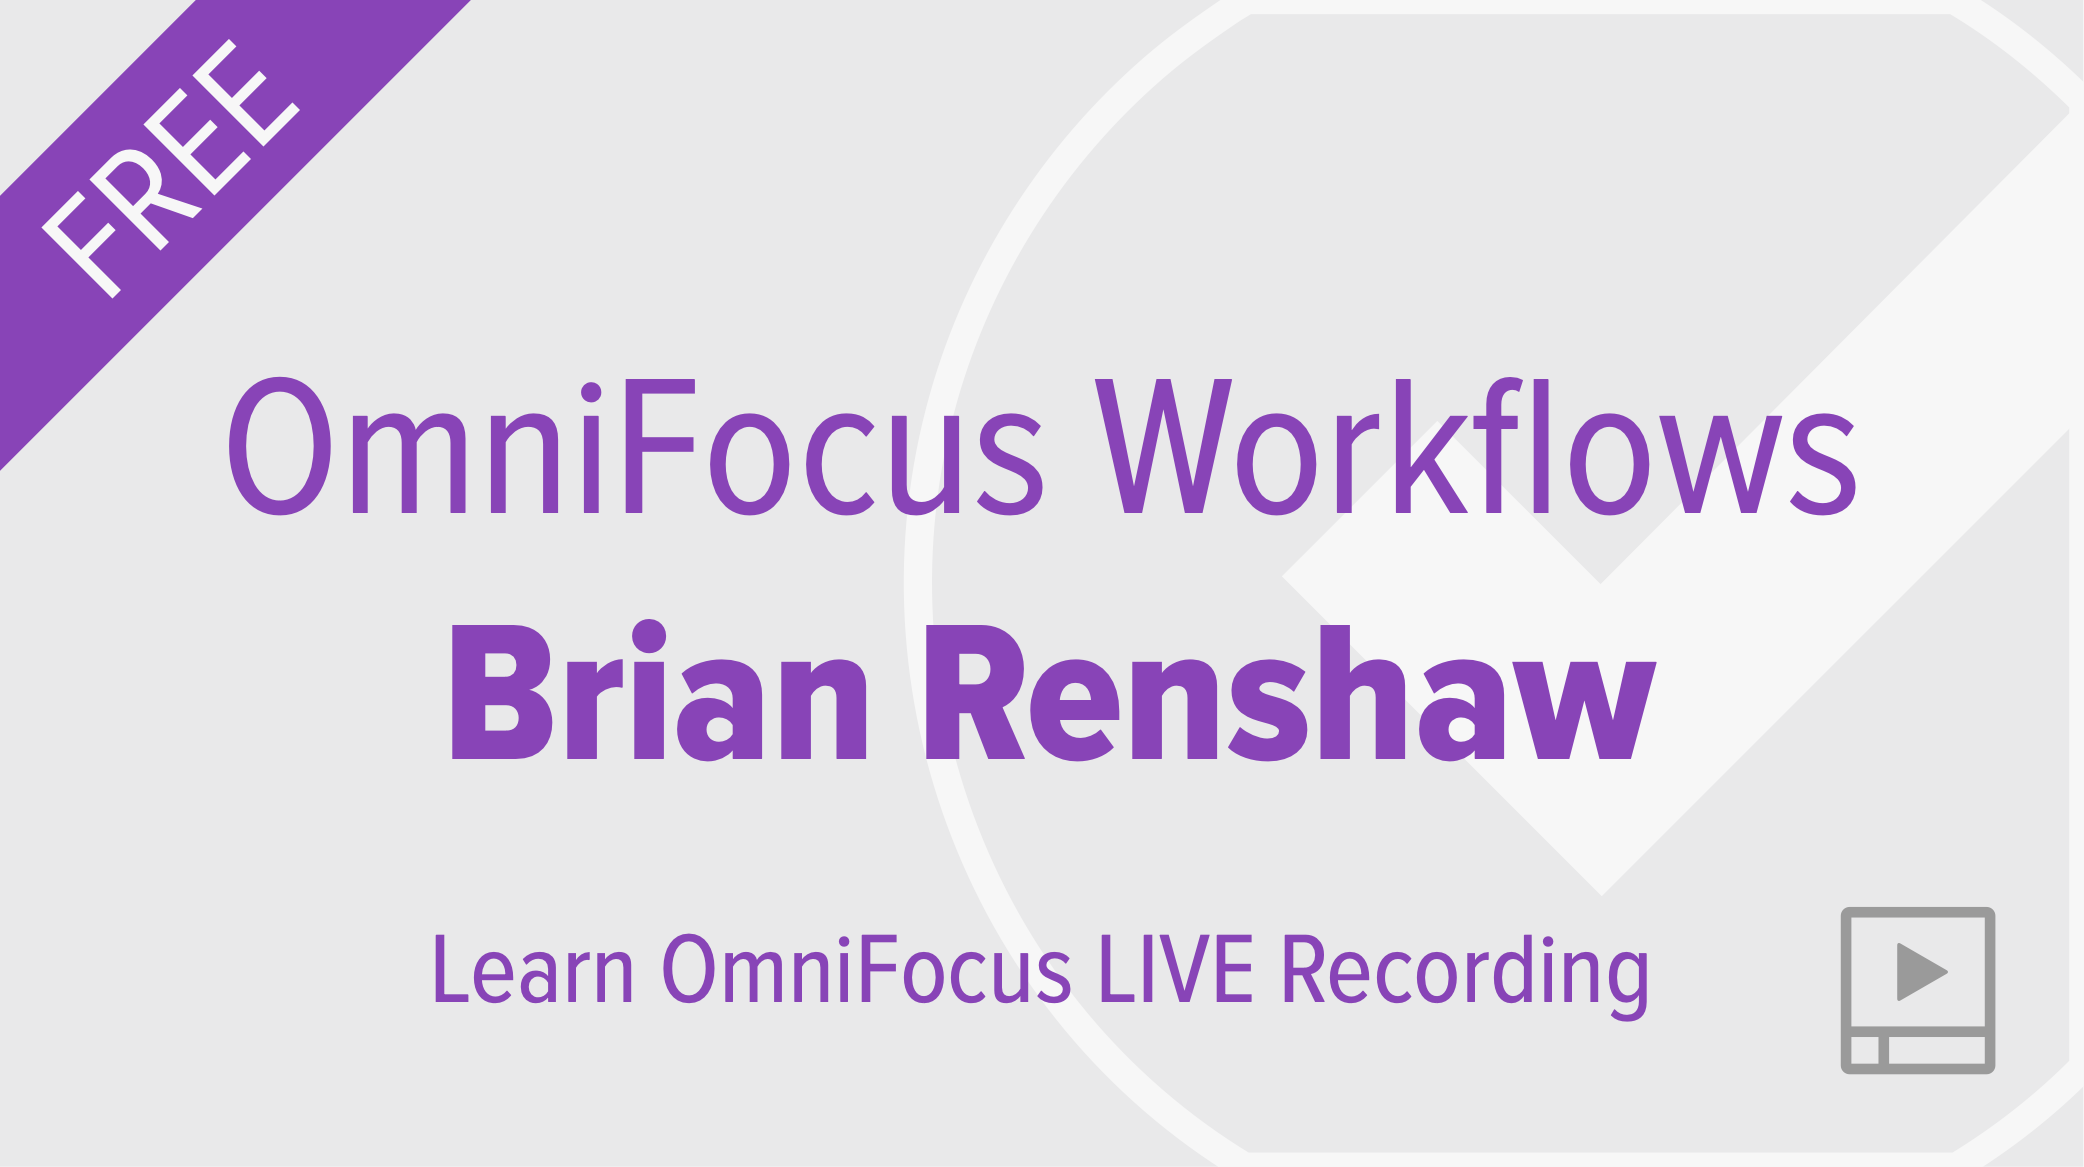 OmniFocus Workflows with Brian Renshaw